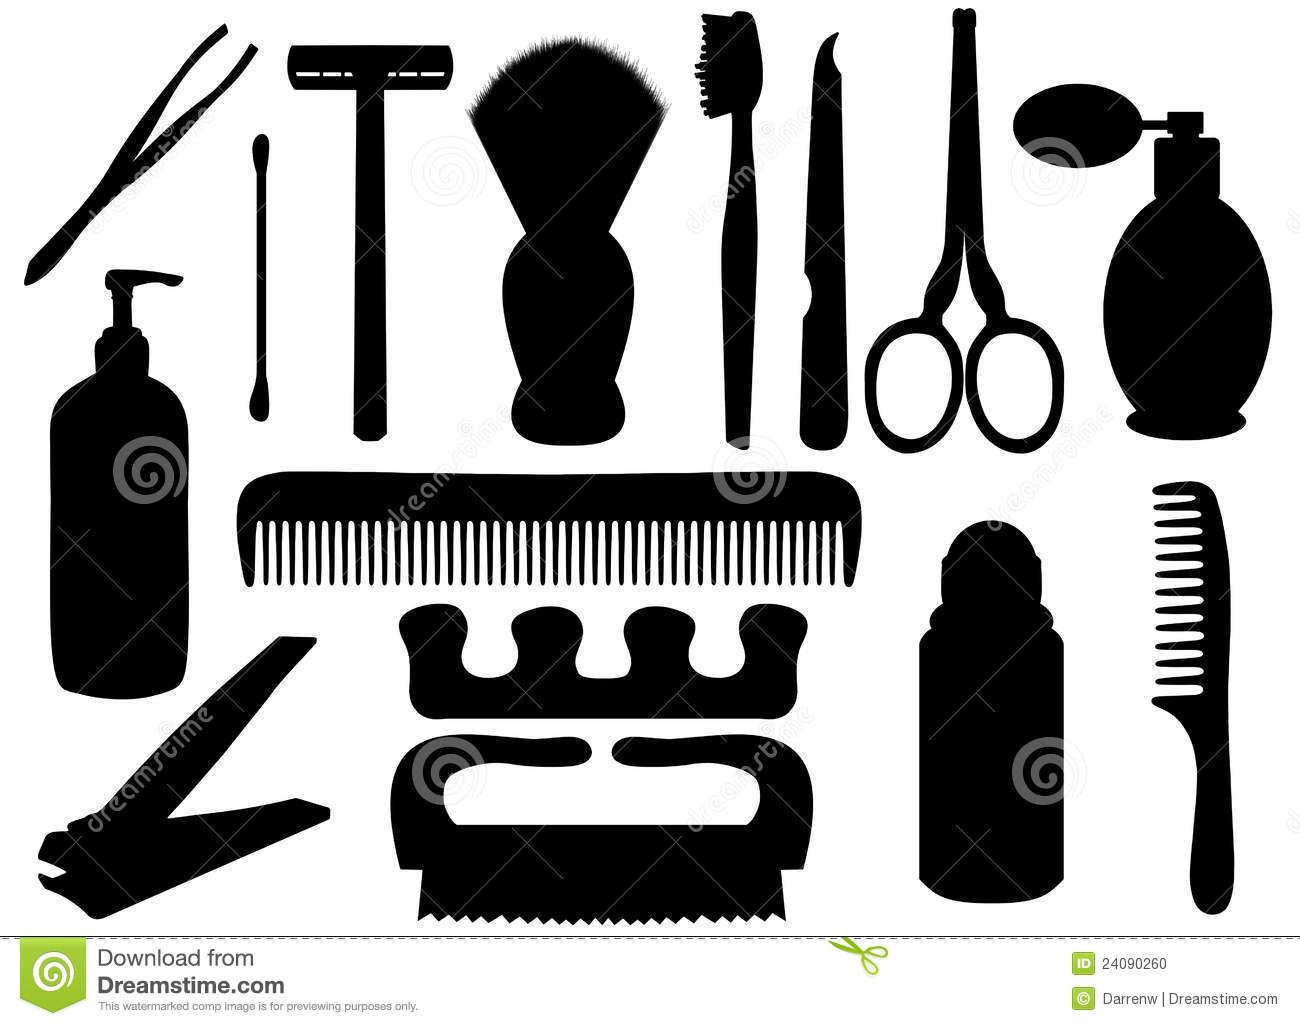 Personal hygiene objects stock illustration. Image of ...